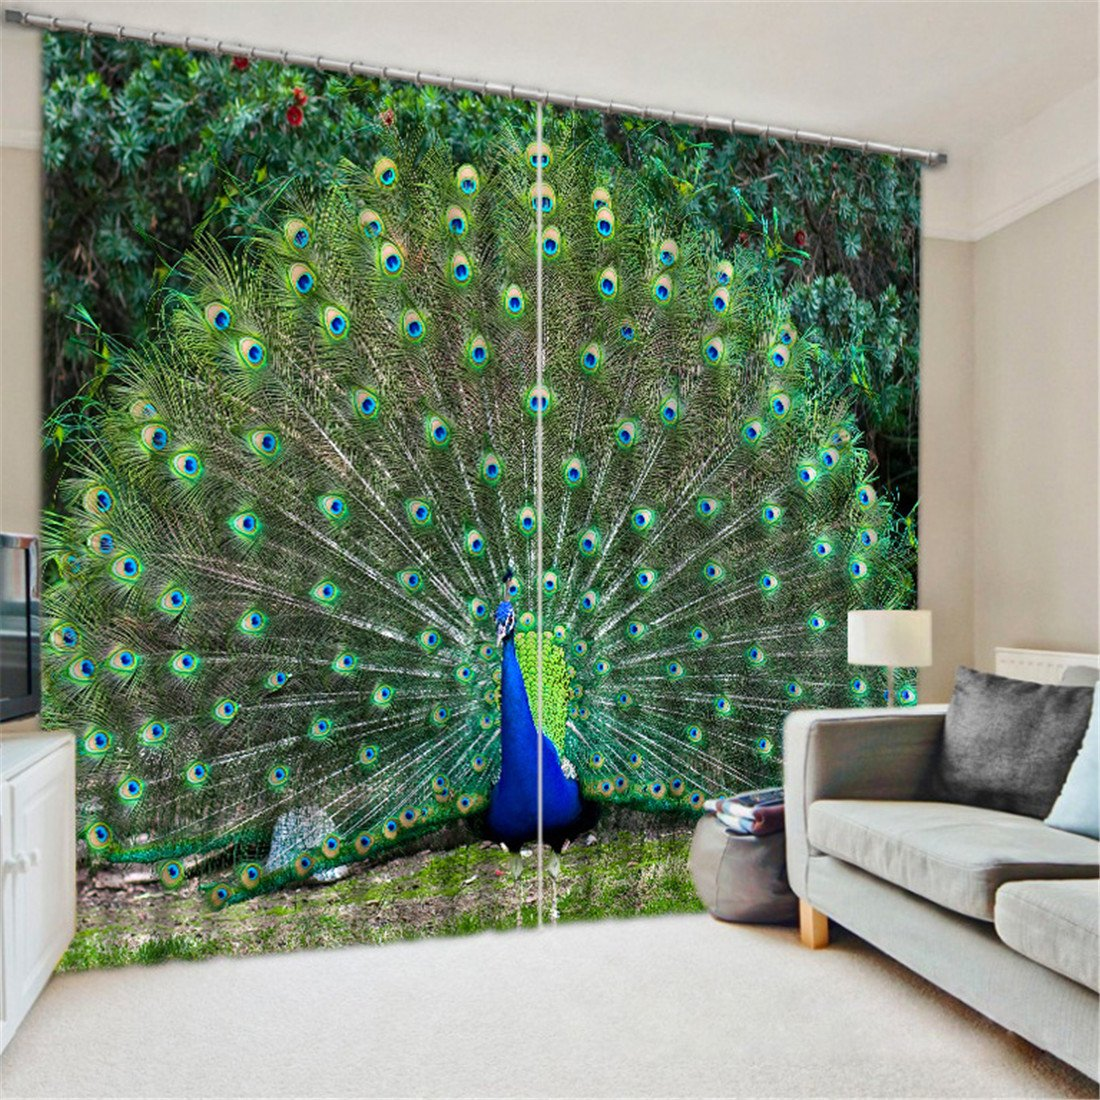 LB 2 Panels Room Darkening Thermal Insulated Blackout Window Curtains,Peacock Spread His Tail 3D Window Drapes for Living Room Bedroom - 104 Inch Width by 84 Inch Length